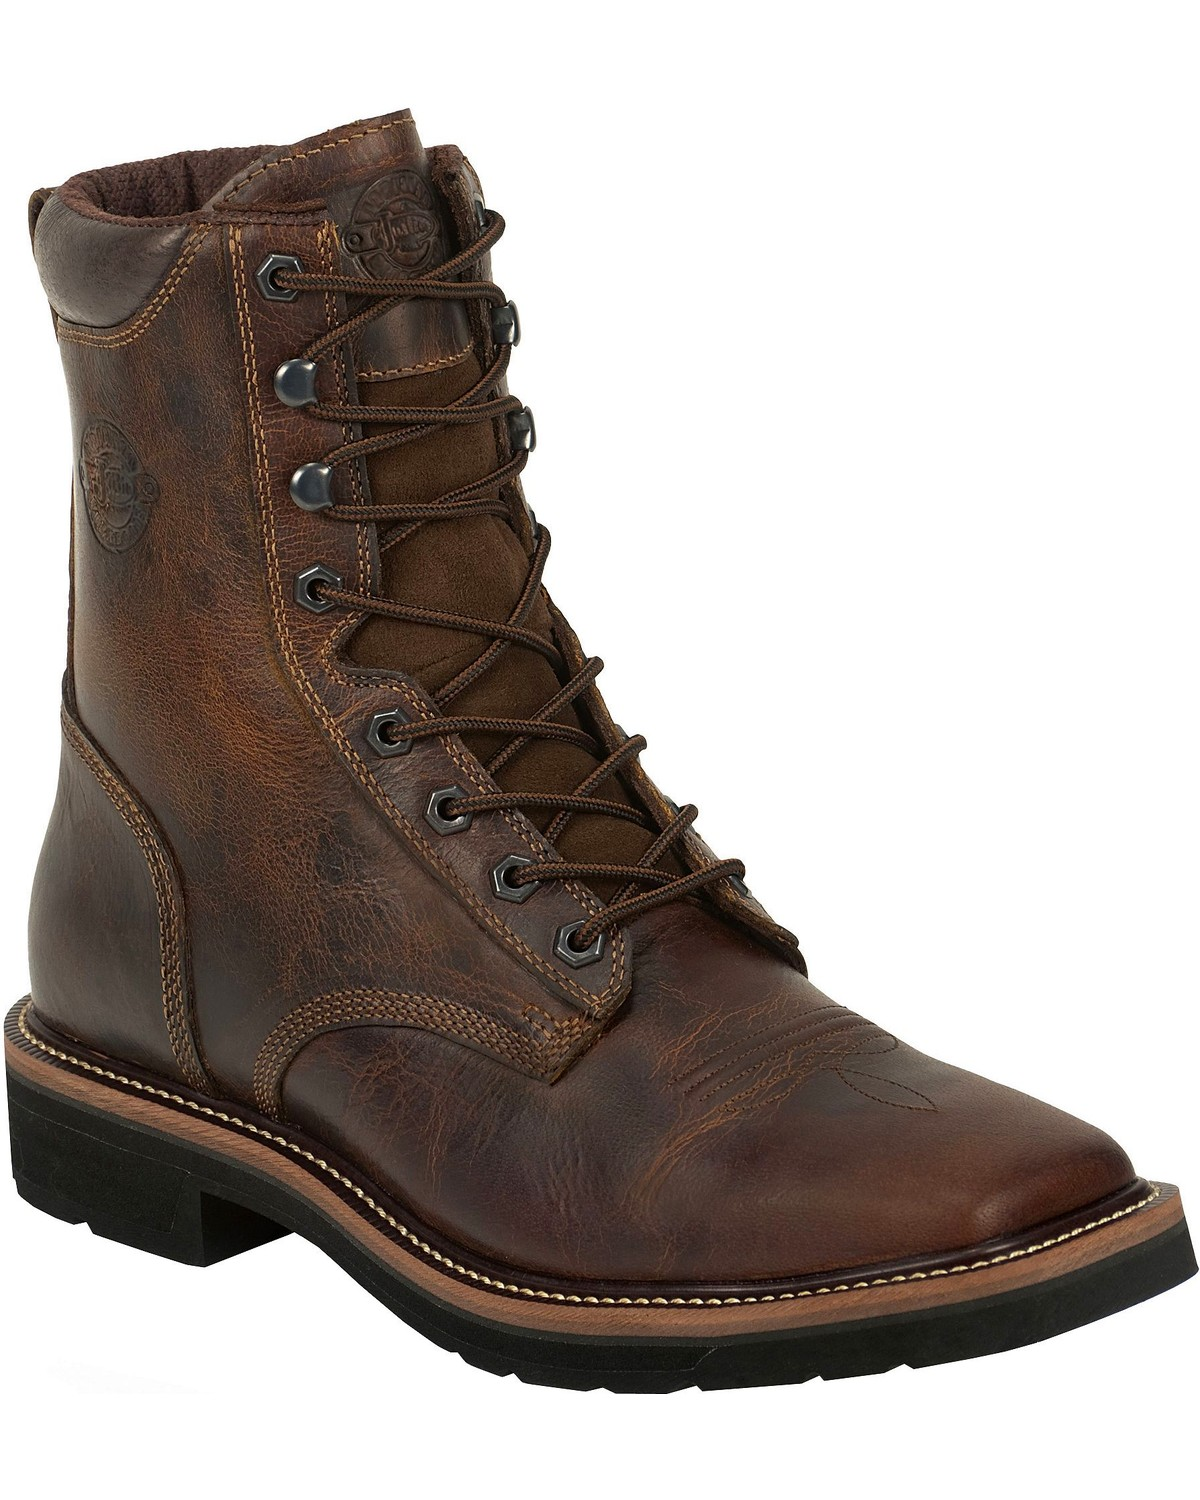 Boots for Men. Complete your footwear collection with men's boots from Kohl's. From fashion-forward to fully functional, the boots for men from Kohl's meet you every need.